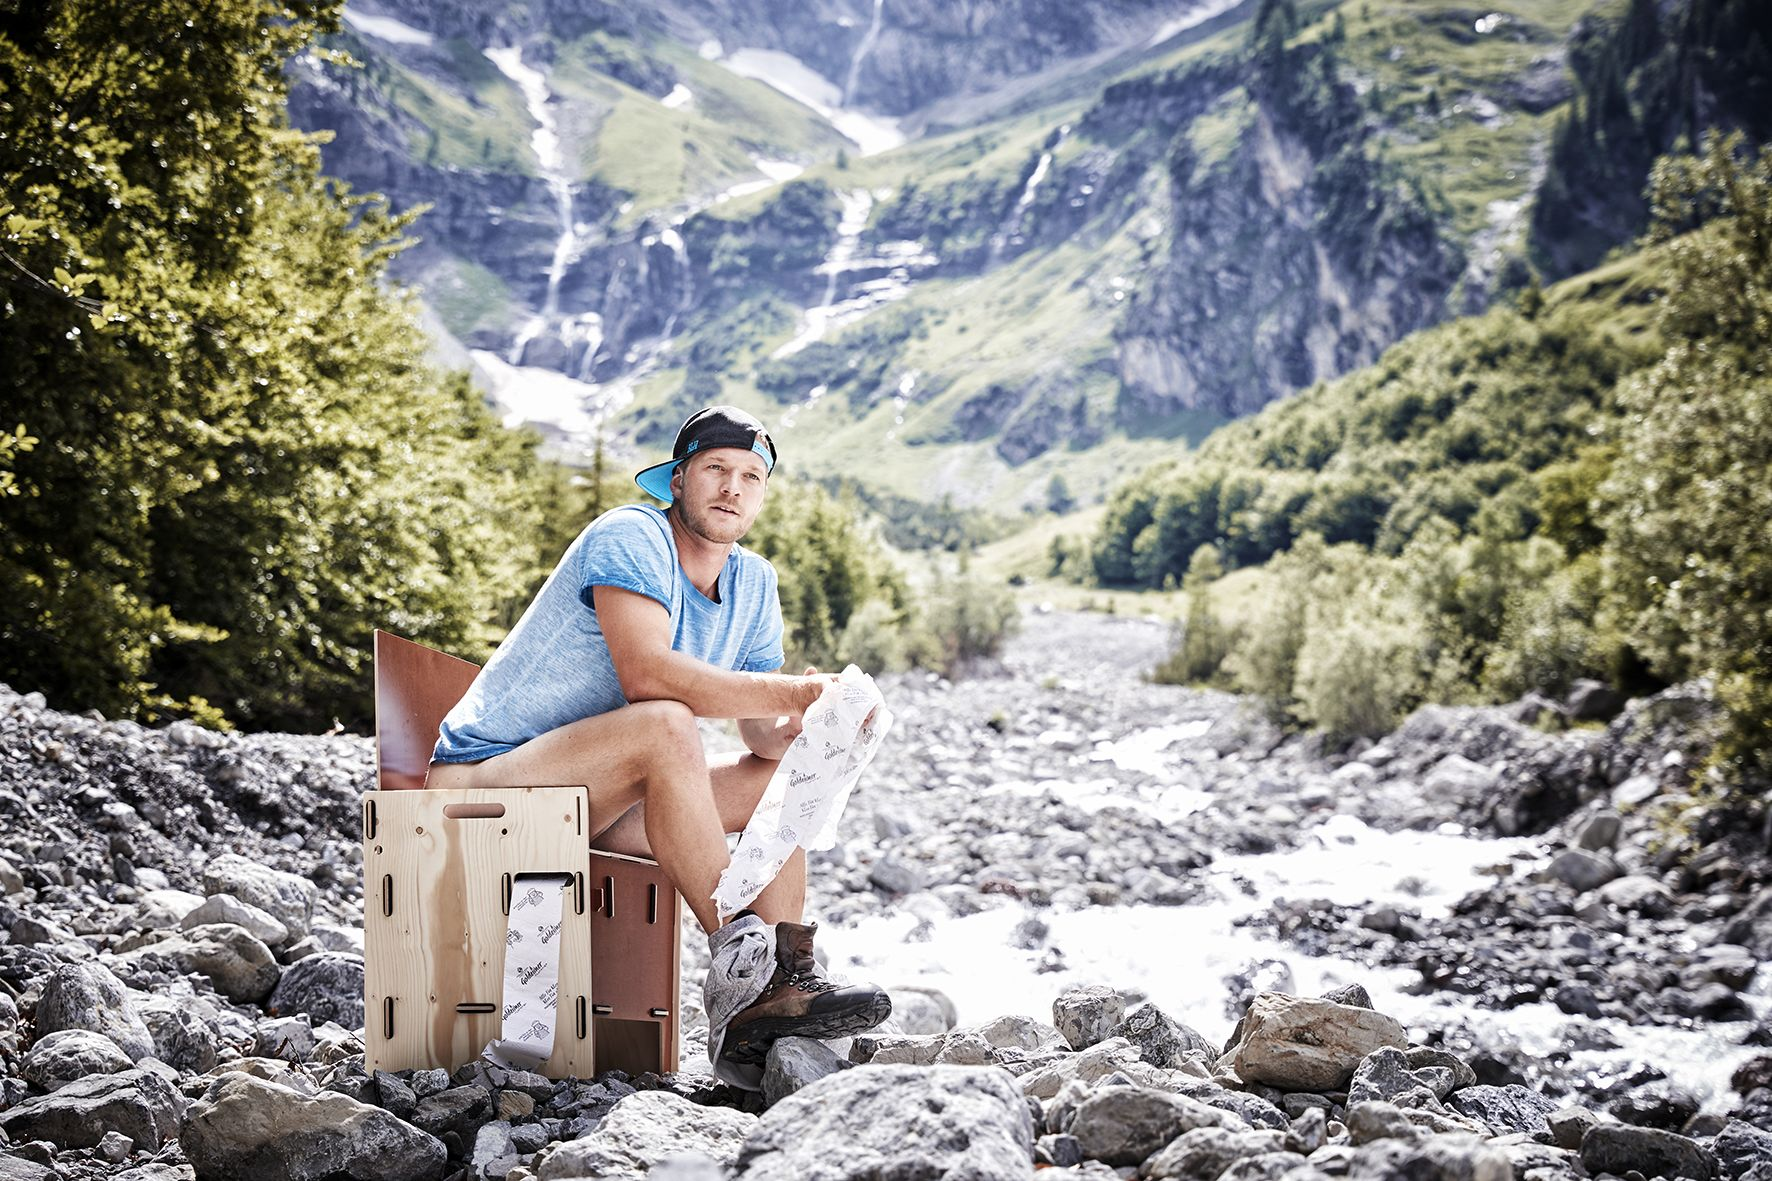 Toni sitting on a portable compost toilet in the middle of a river bed at the bottom of the mountain at Brandnertal, holding Goldeimer toilet paper in his hands.